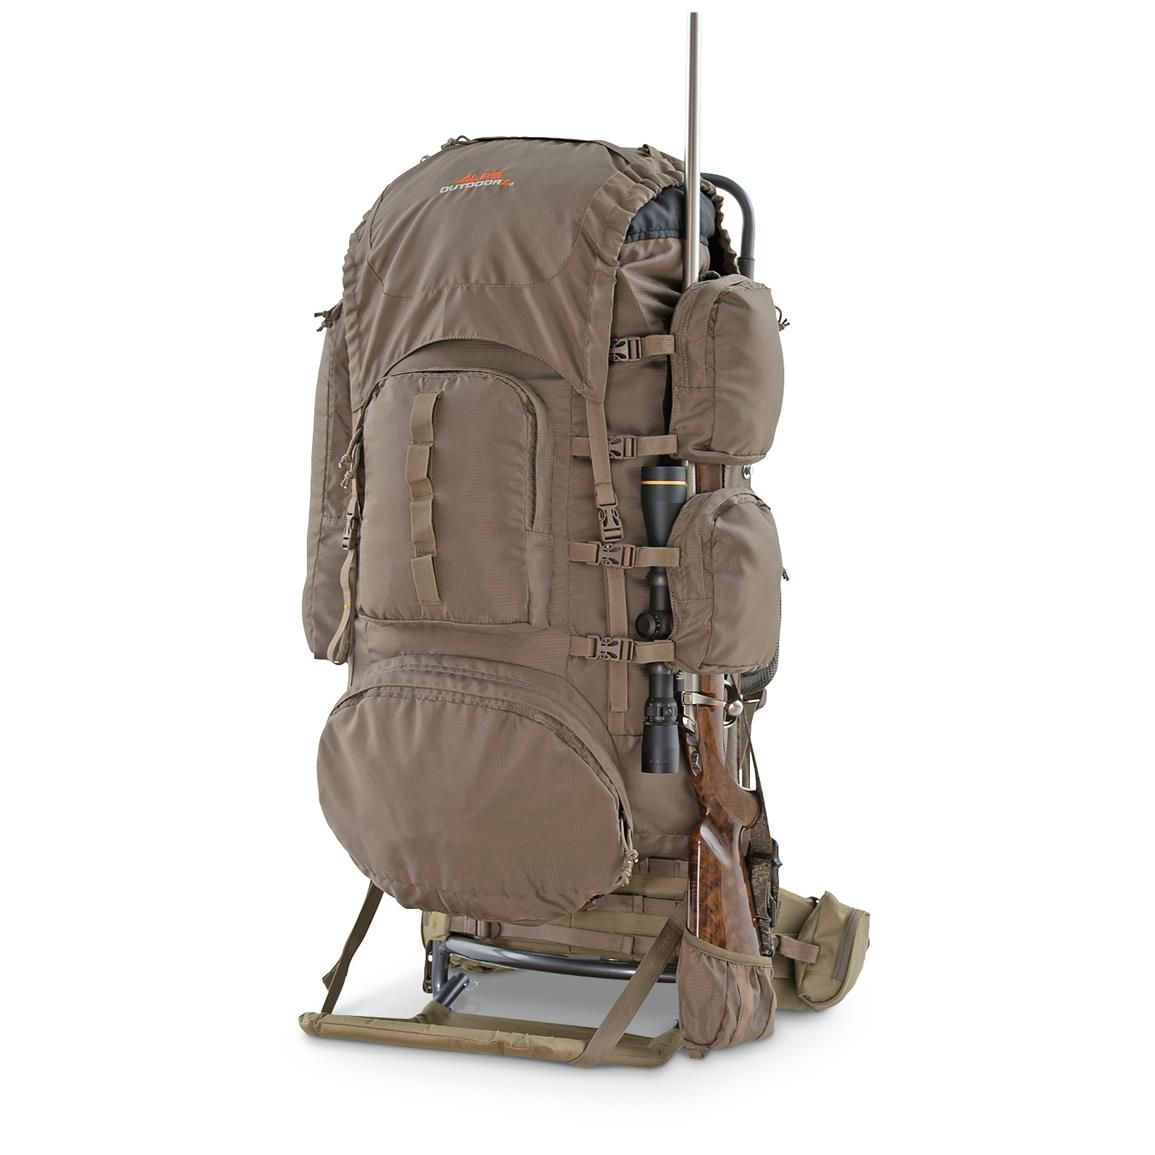 Alps Outdoorz Commander Freighter Frame Pack Bag Hunting Backpacks Hunting Packs Hunting Bags